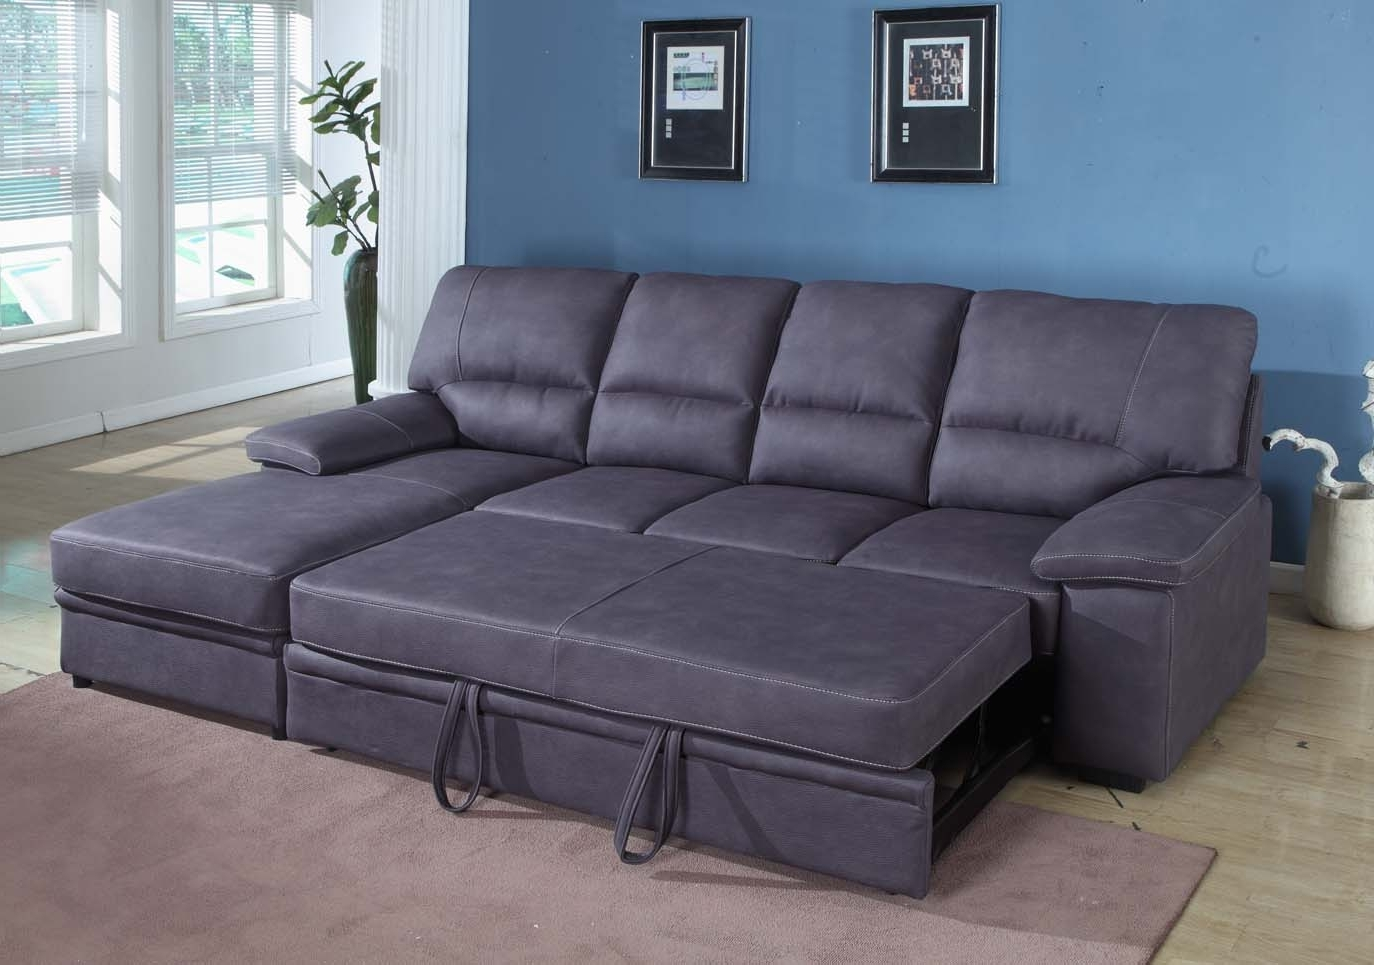 Most Recent Furniture Sectional Sofa Nj Best Under 500 Throughout Vt Sofas